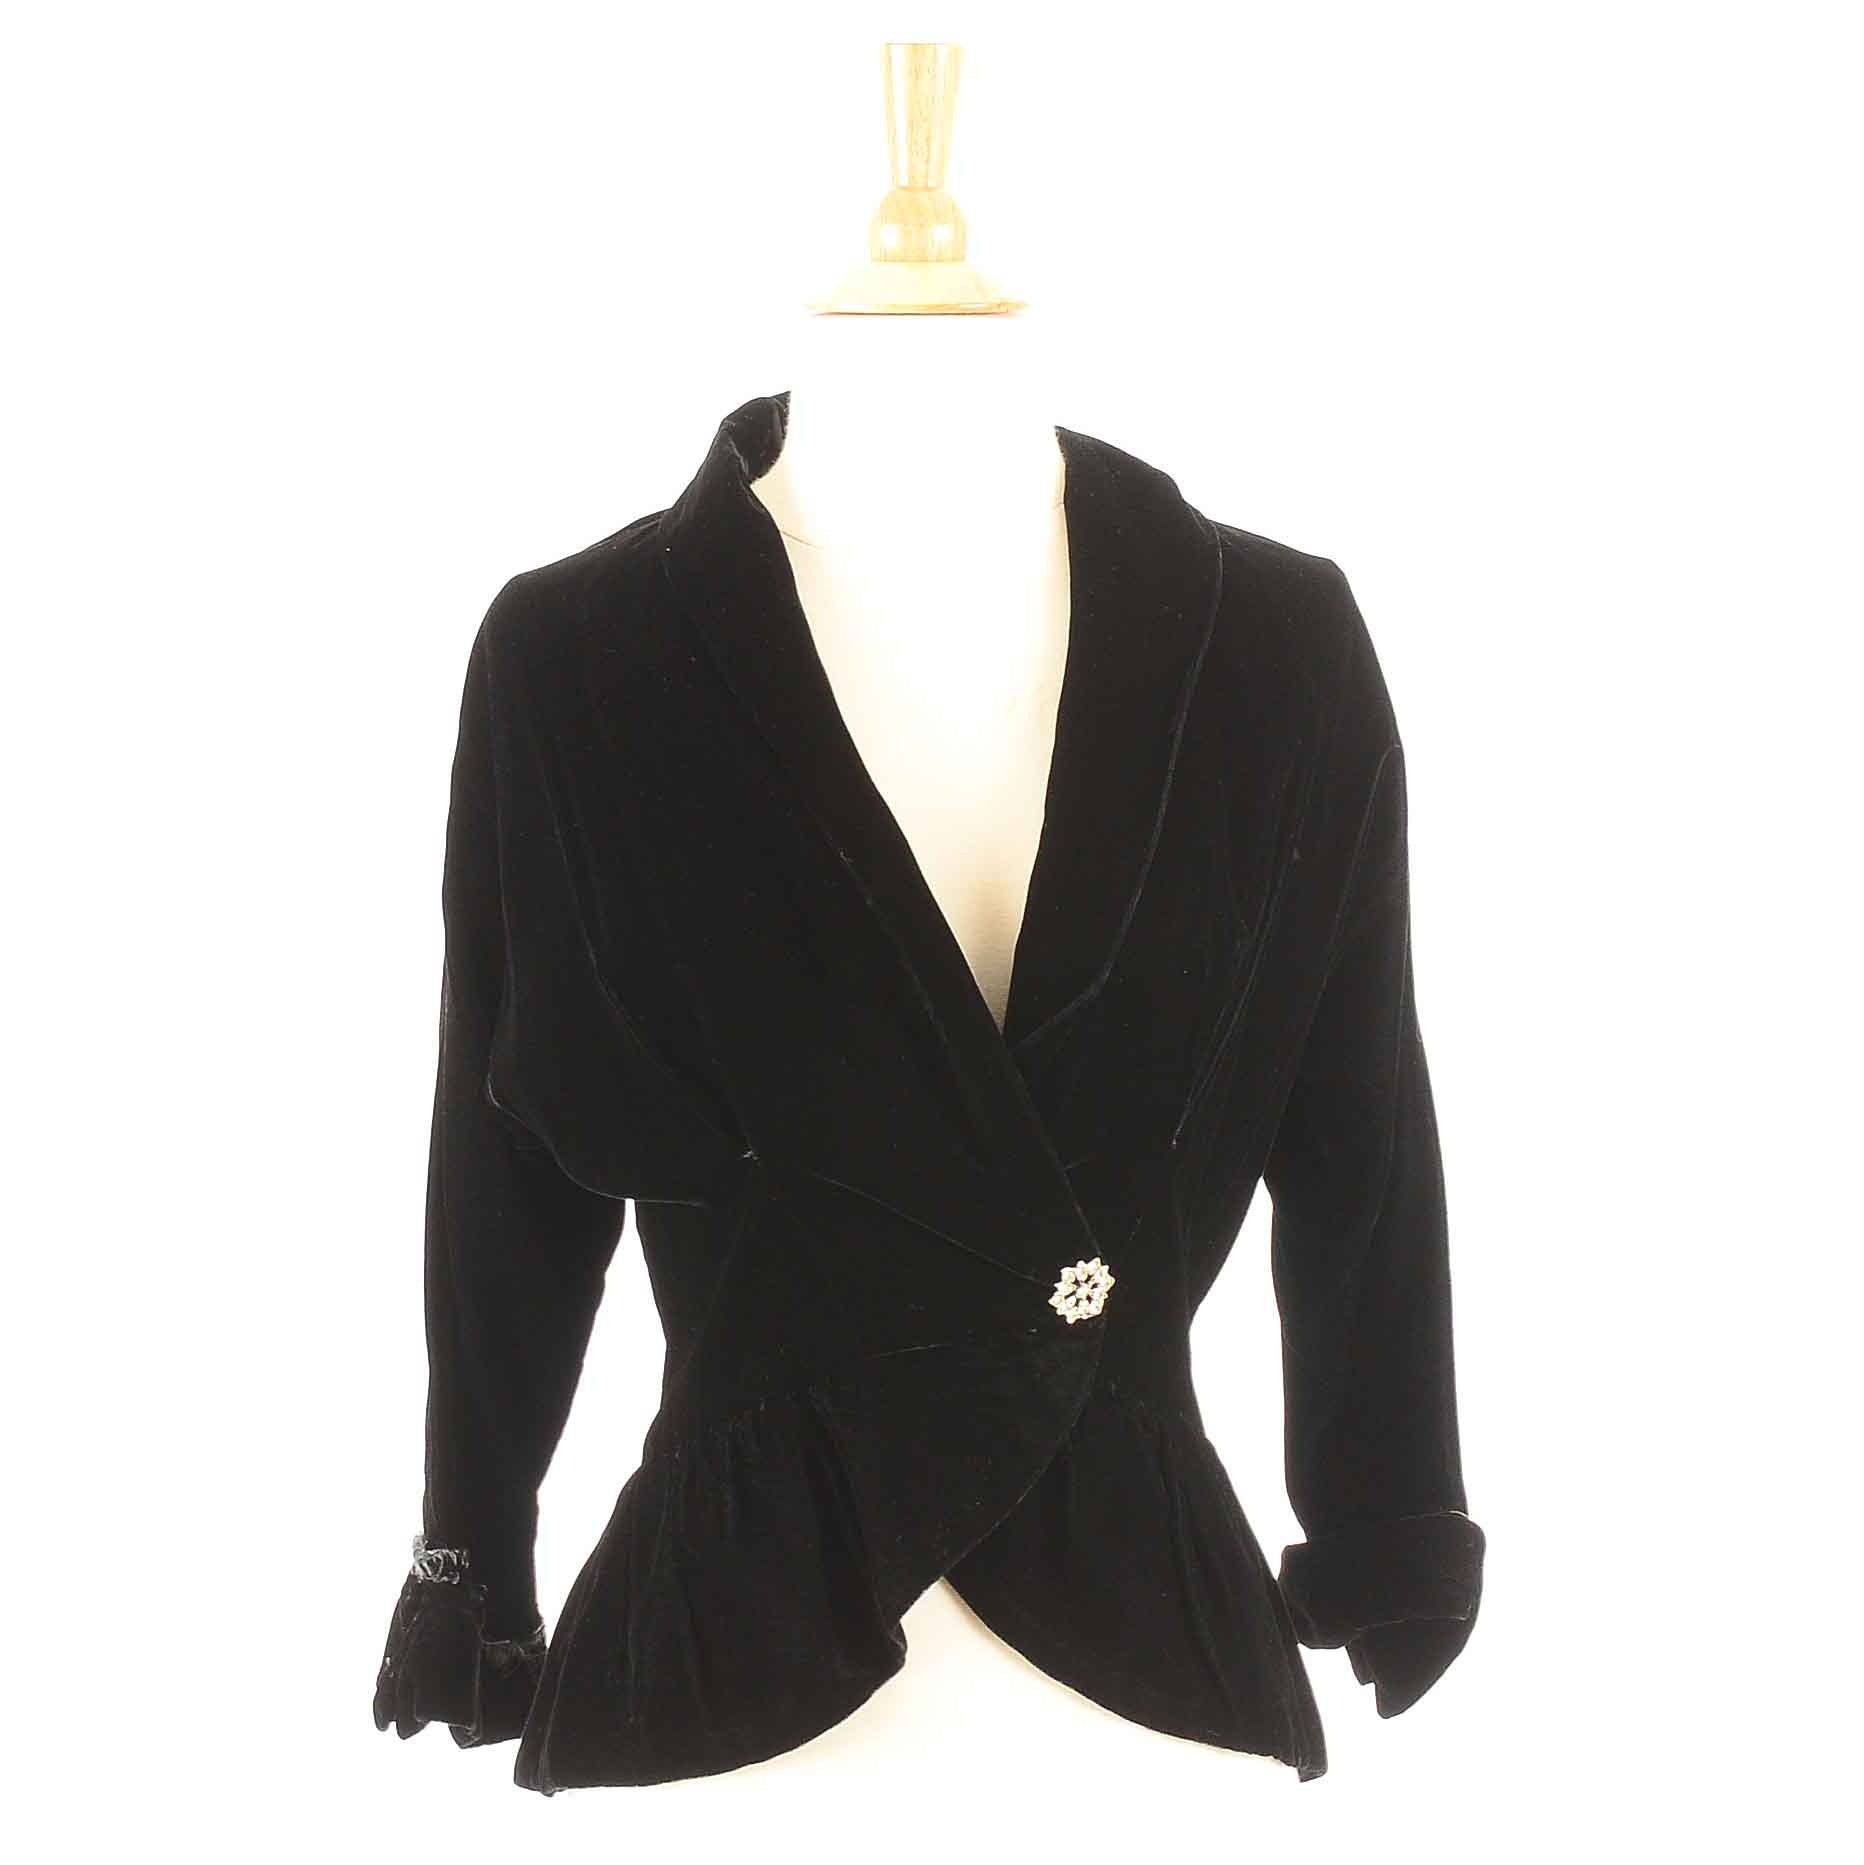 Early 20th Century Black Velvet Jacket